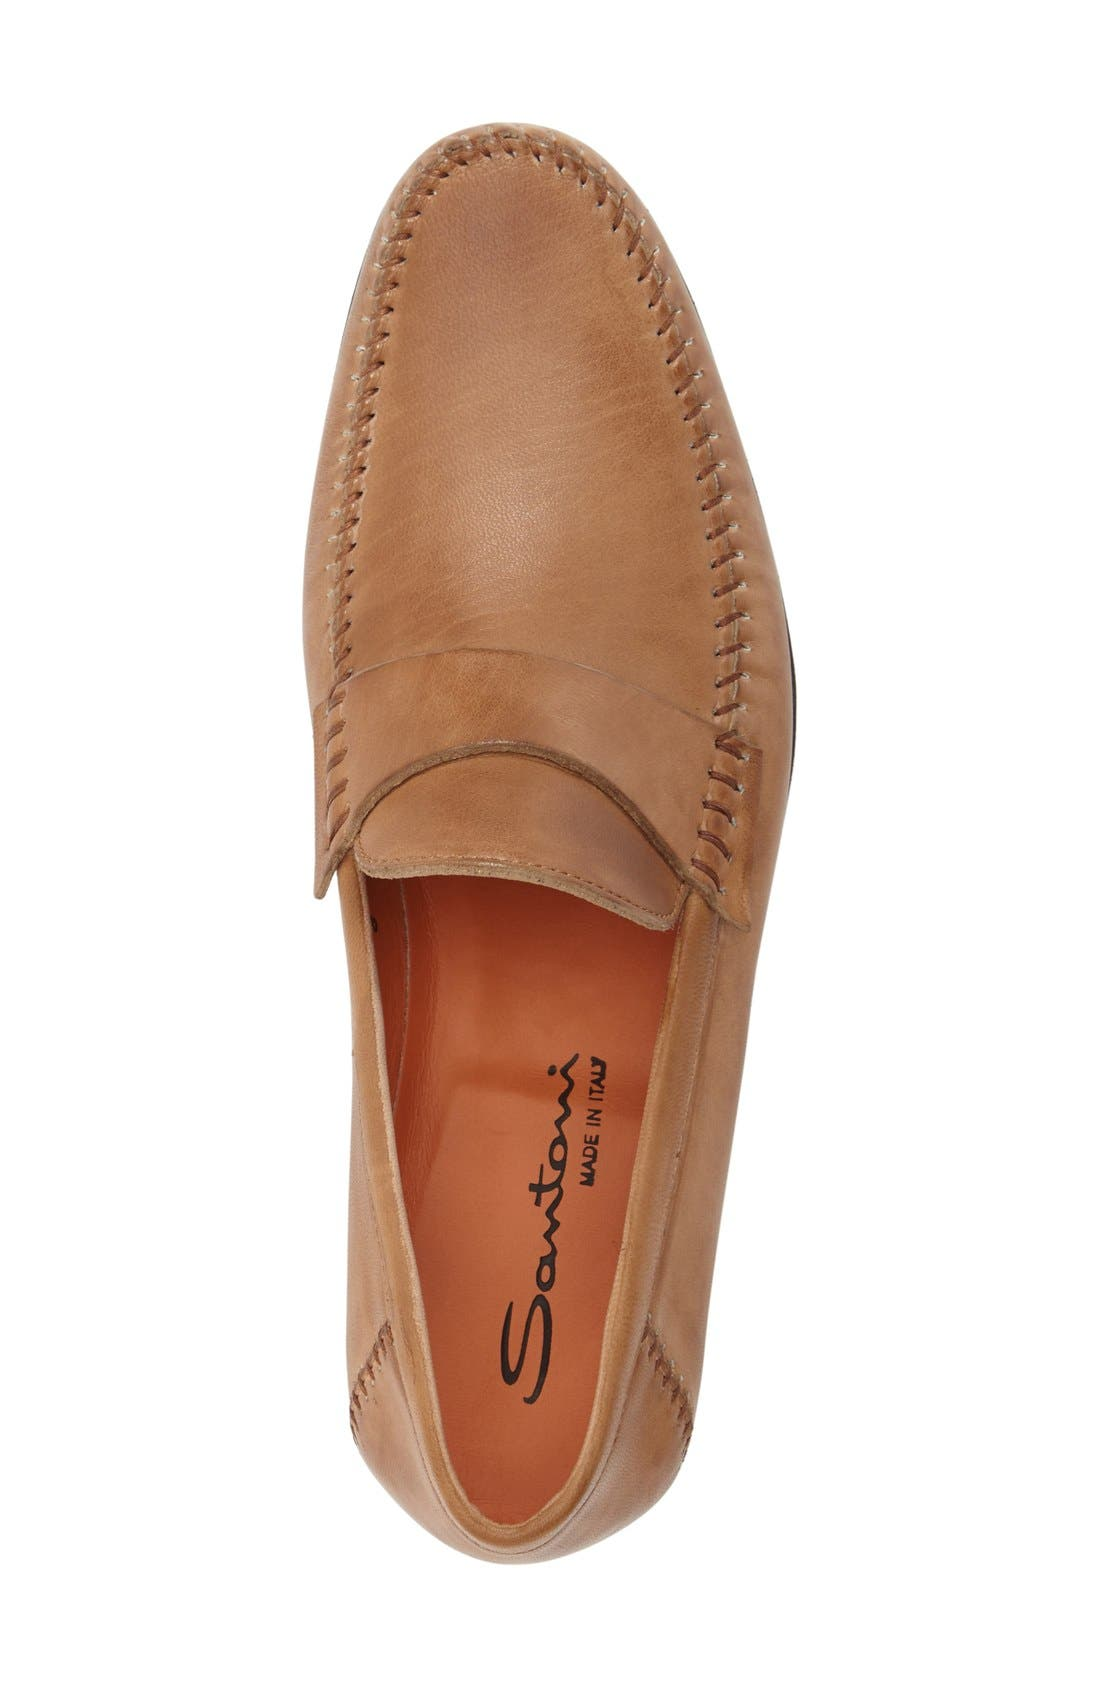 'Paine' Leather Loafer,                             Alternate thumbnail 3, color,                             Tan